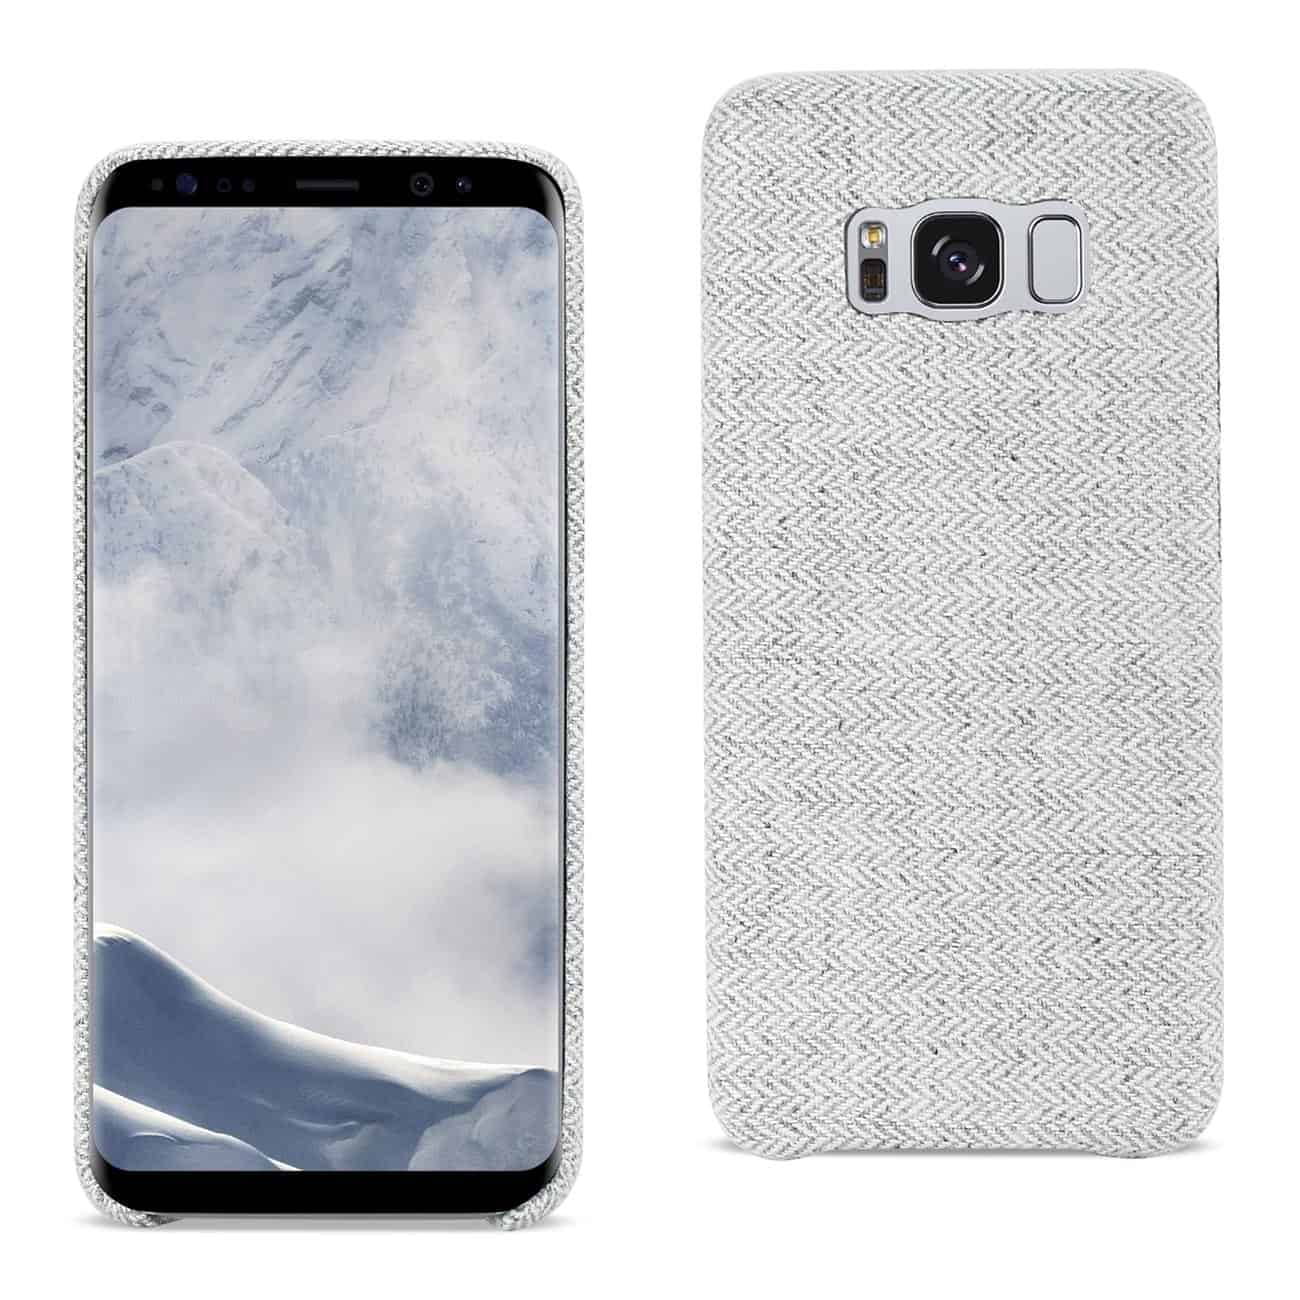 SAMSUNG GALAXY S8 HERRINGBONE FABRIC IN LIGHT GRAY